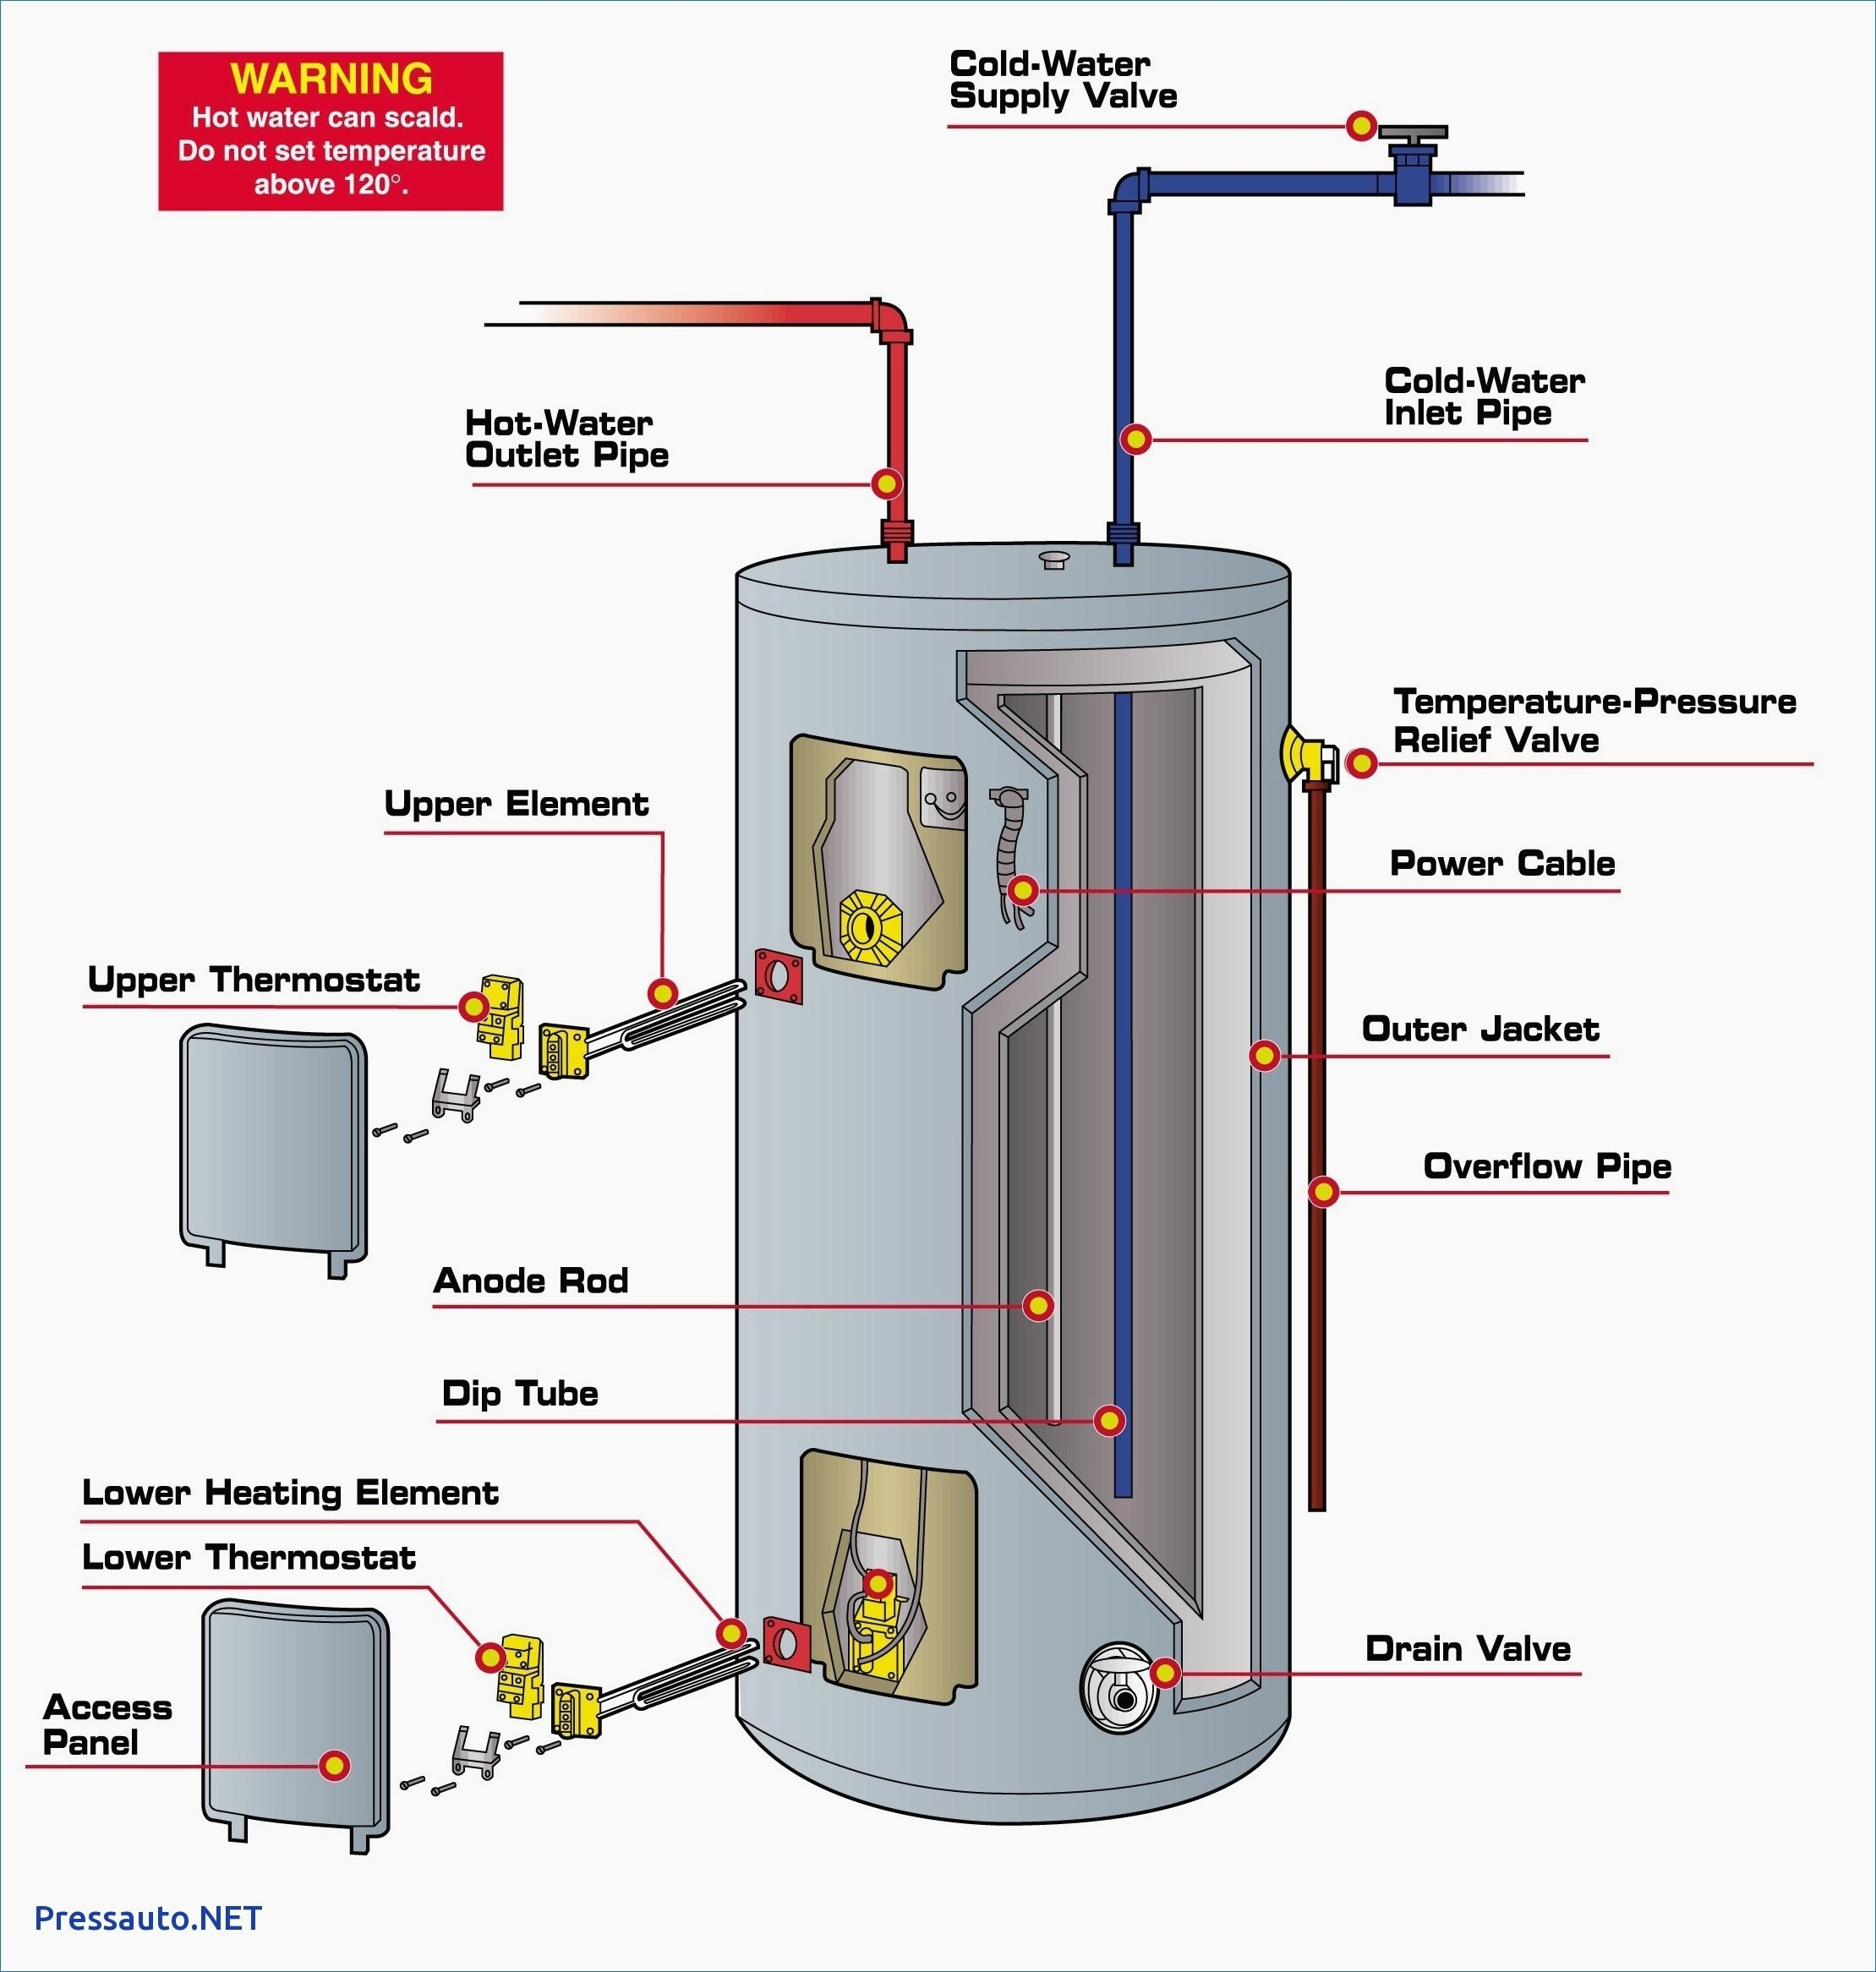 hot water heater wiring schematic 220v hot water heater wiring diagram | free wiring diagram